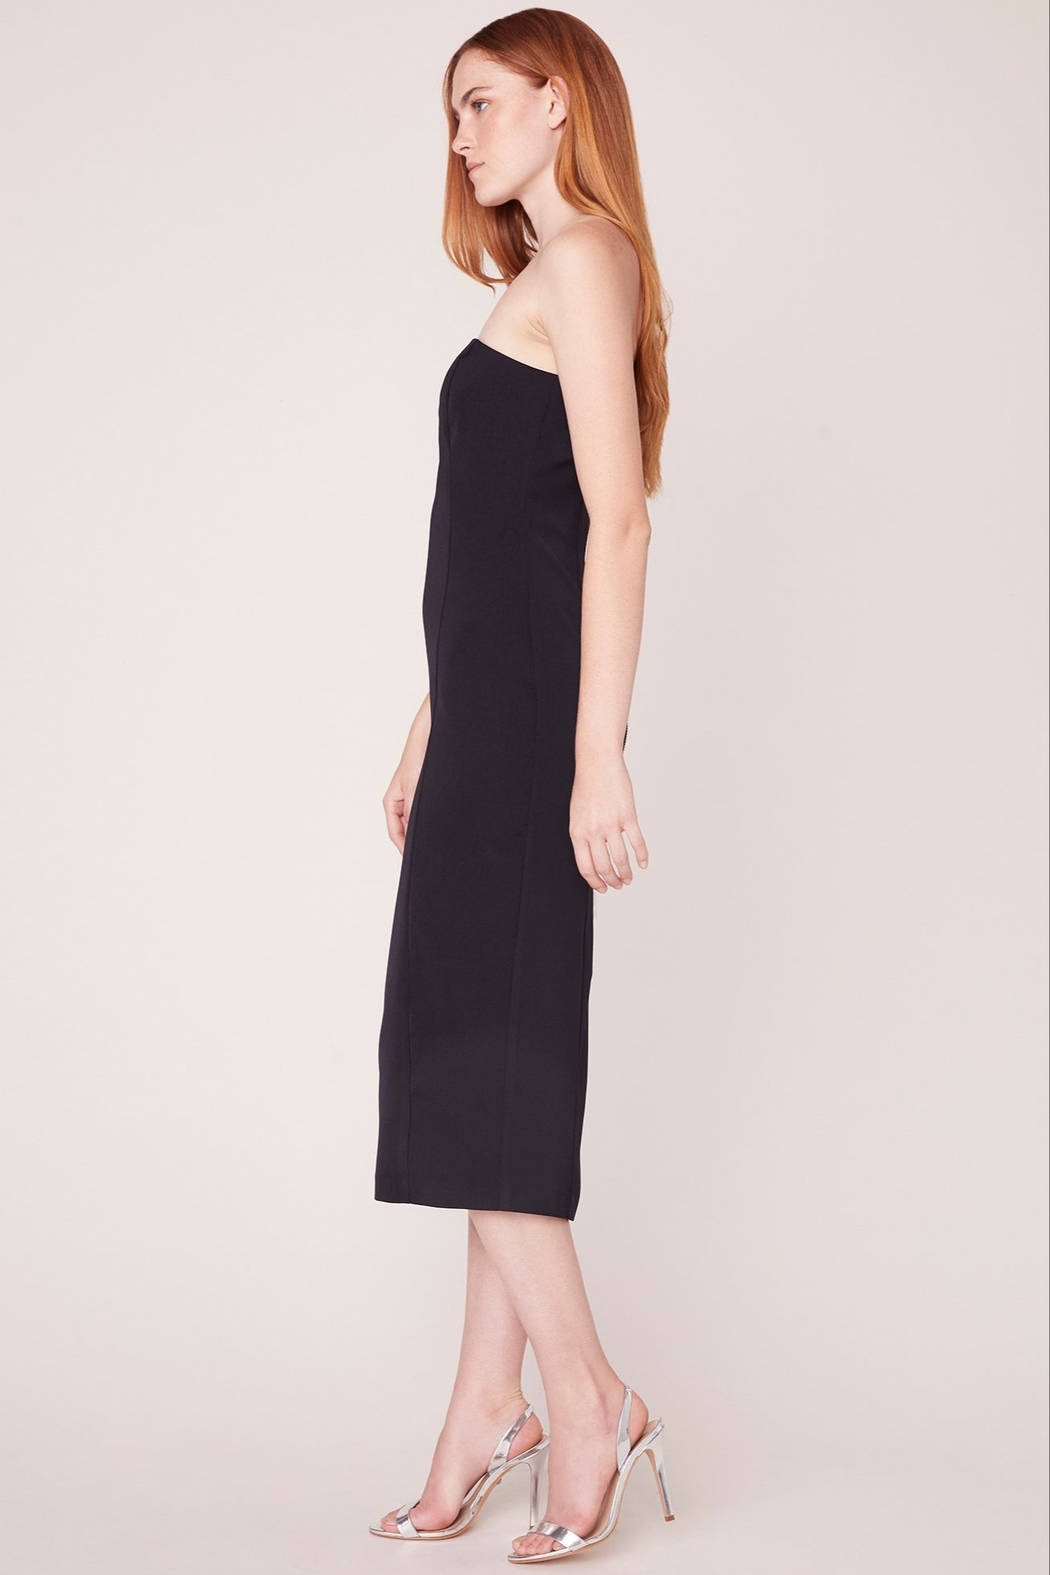 BB Dakota Strapless Body-Con Dress - Side Cropped Image